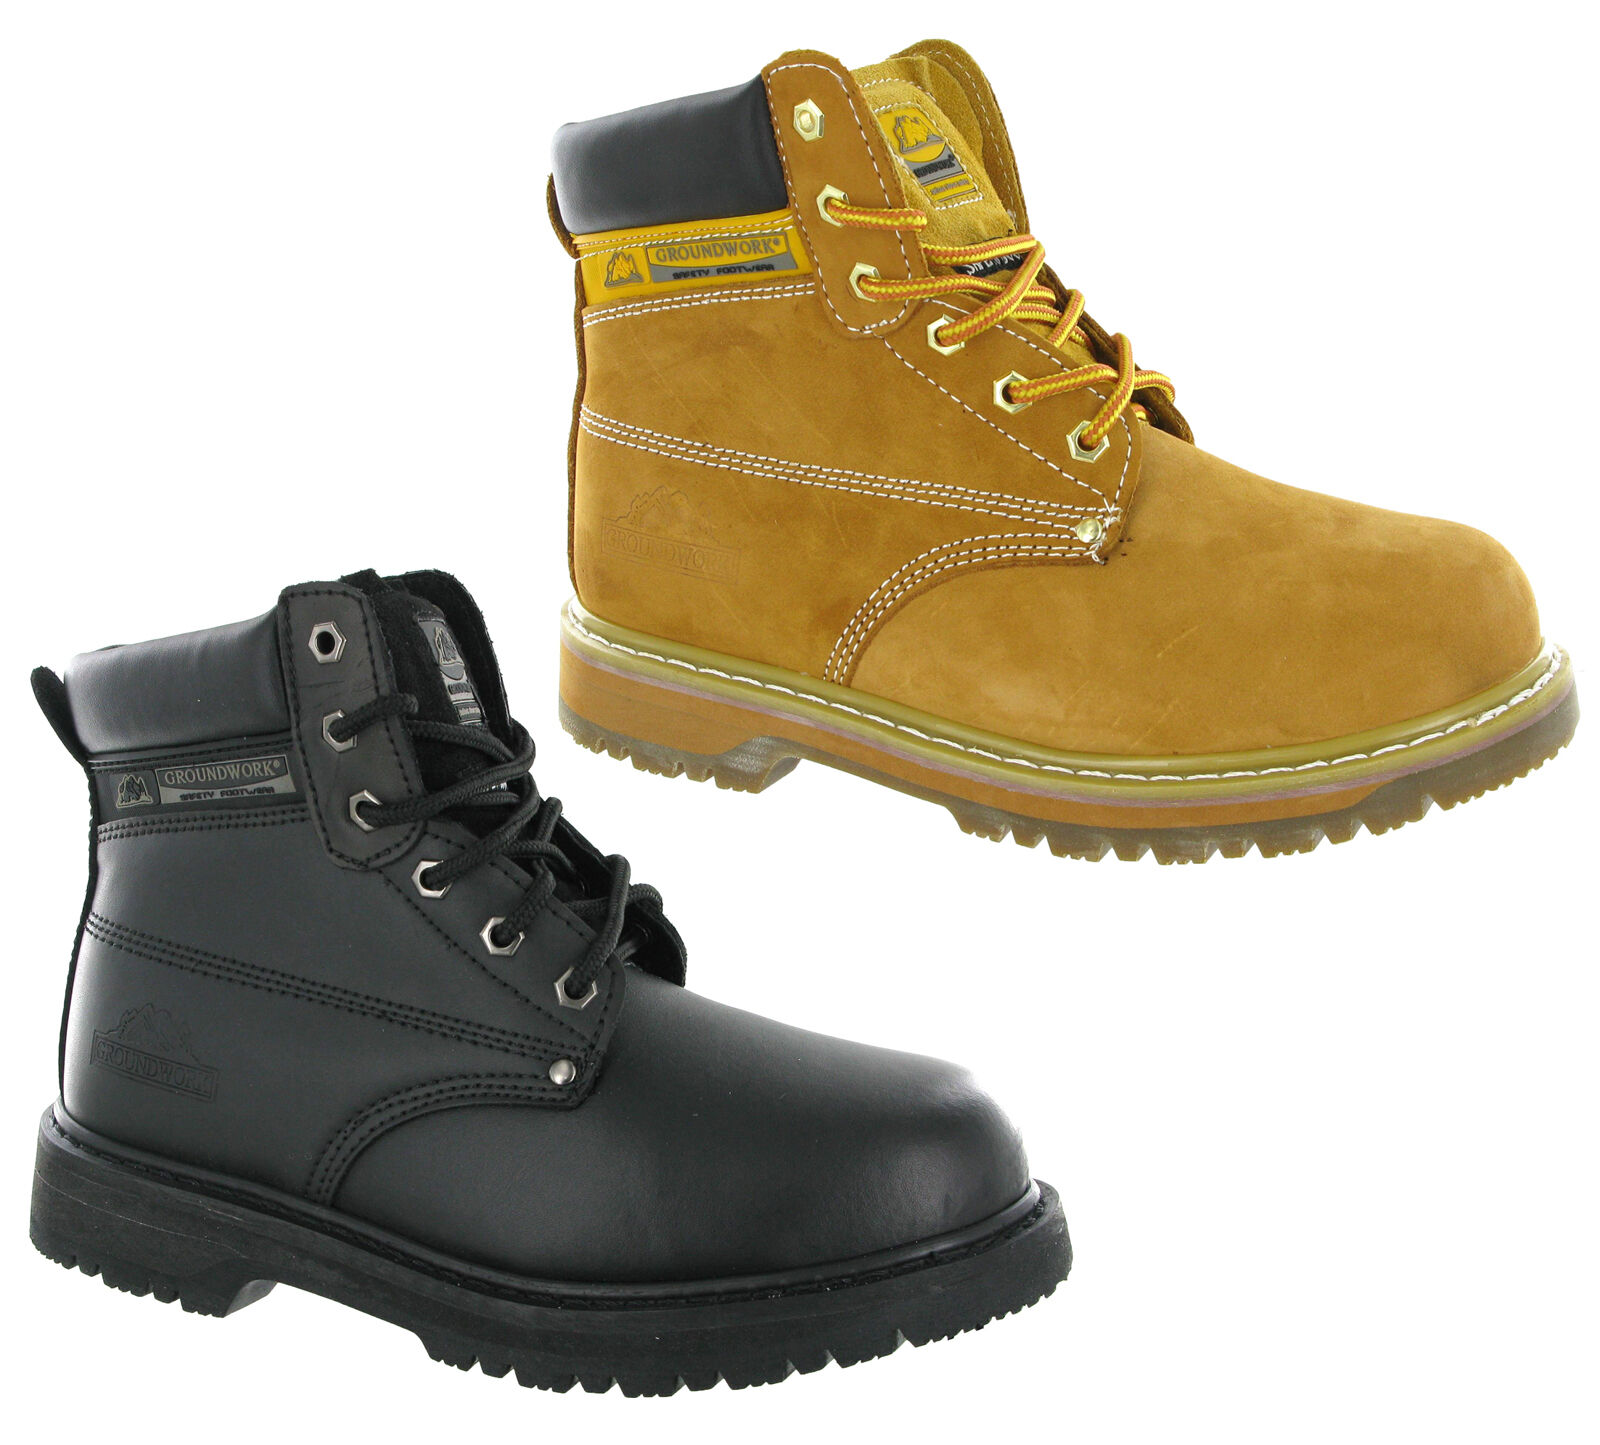 99004f15386 Details about Groundwork Leather Safety Steel Toe Cap Padded Ankle Mens  Work Boots UK3-13